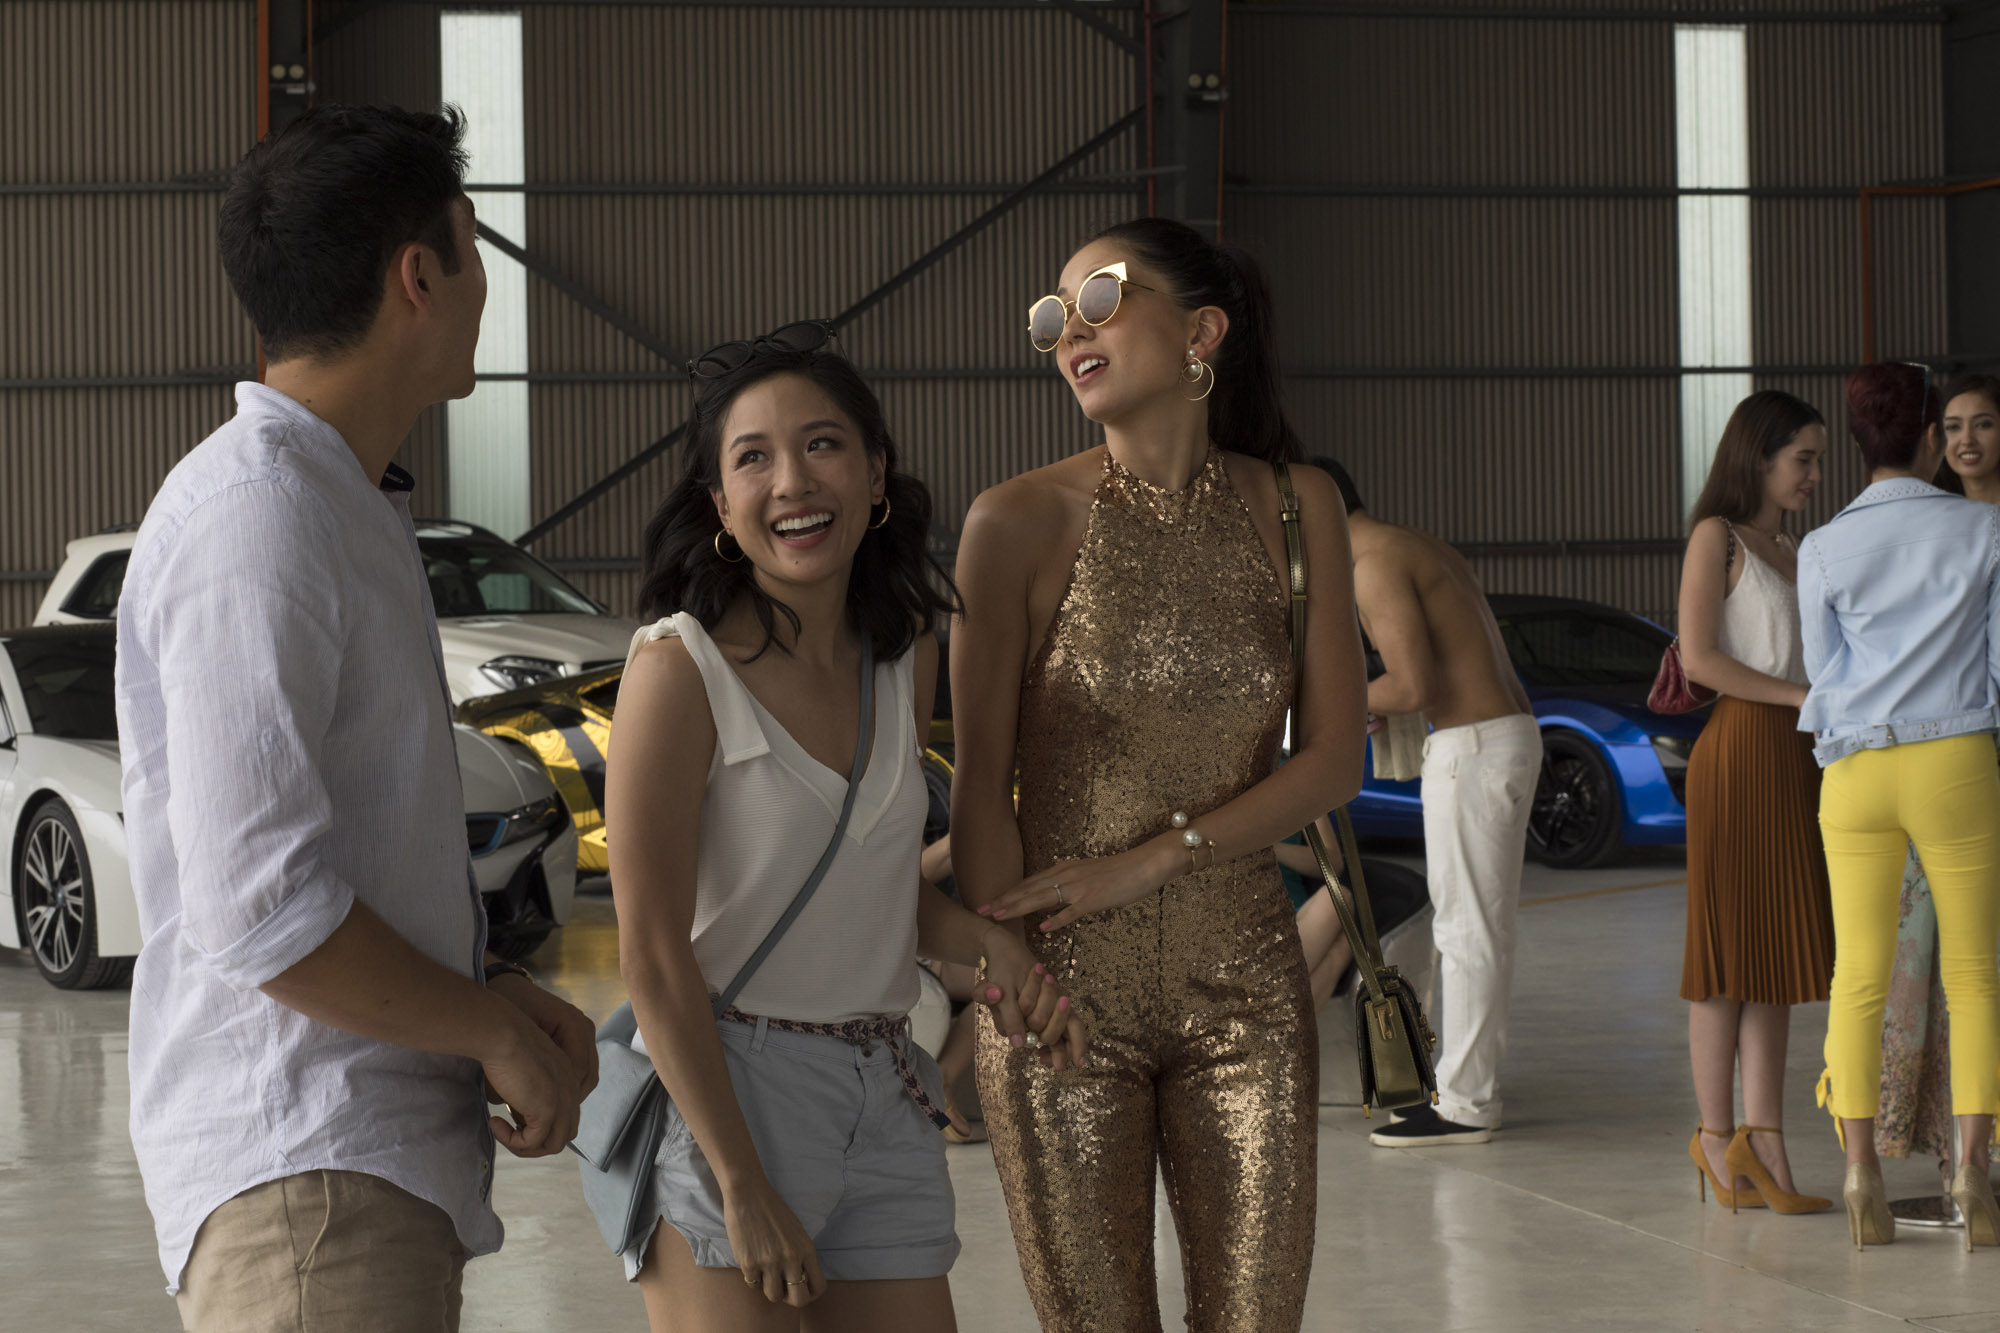 Crazy Rich Asians - The Movie is coming to screens August, 2018